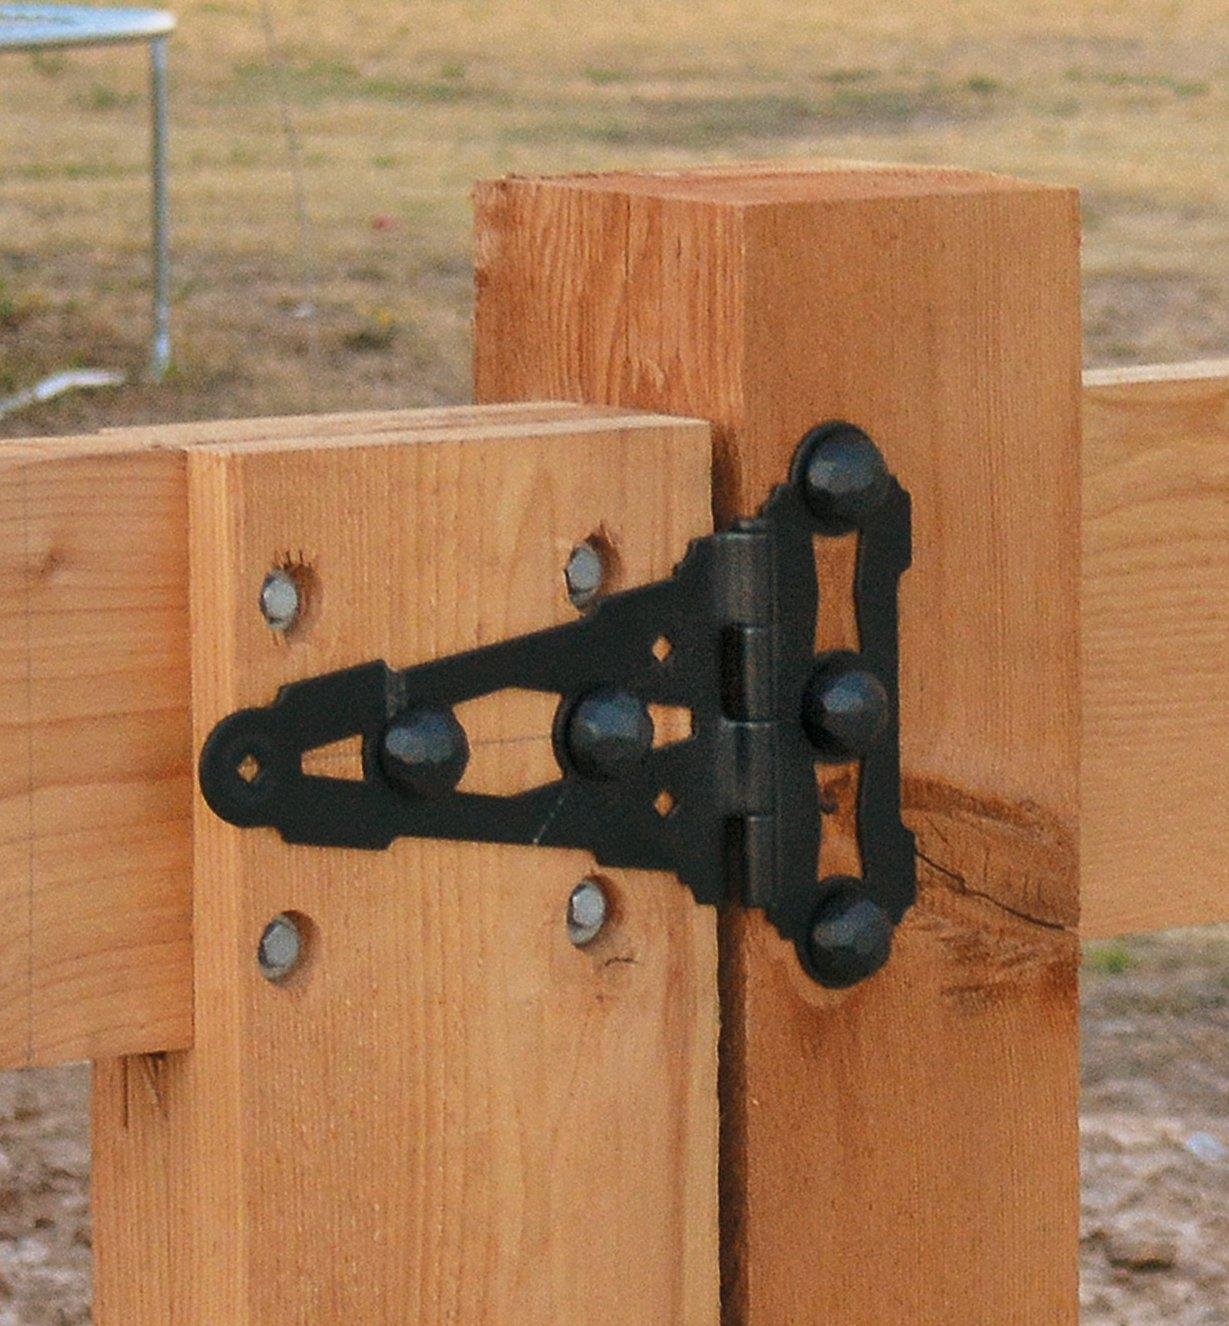 Example of Ozco Tee Hinge mounted on a gate